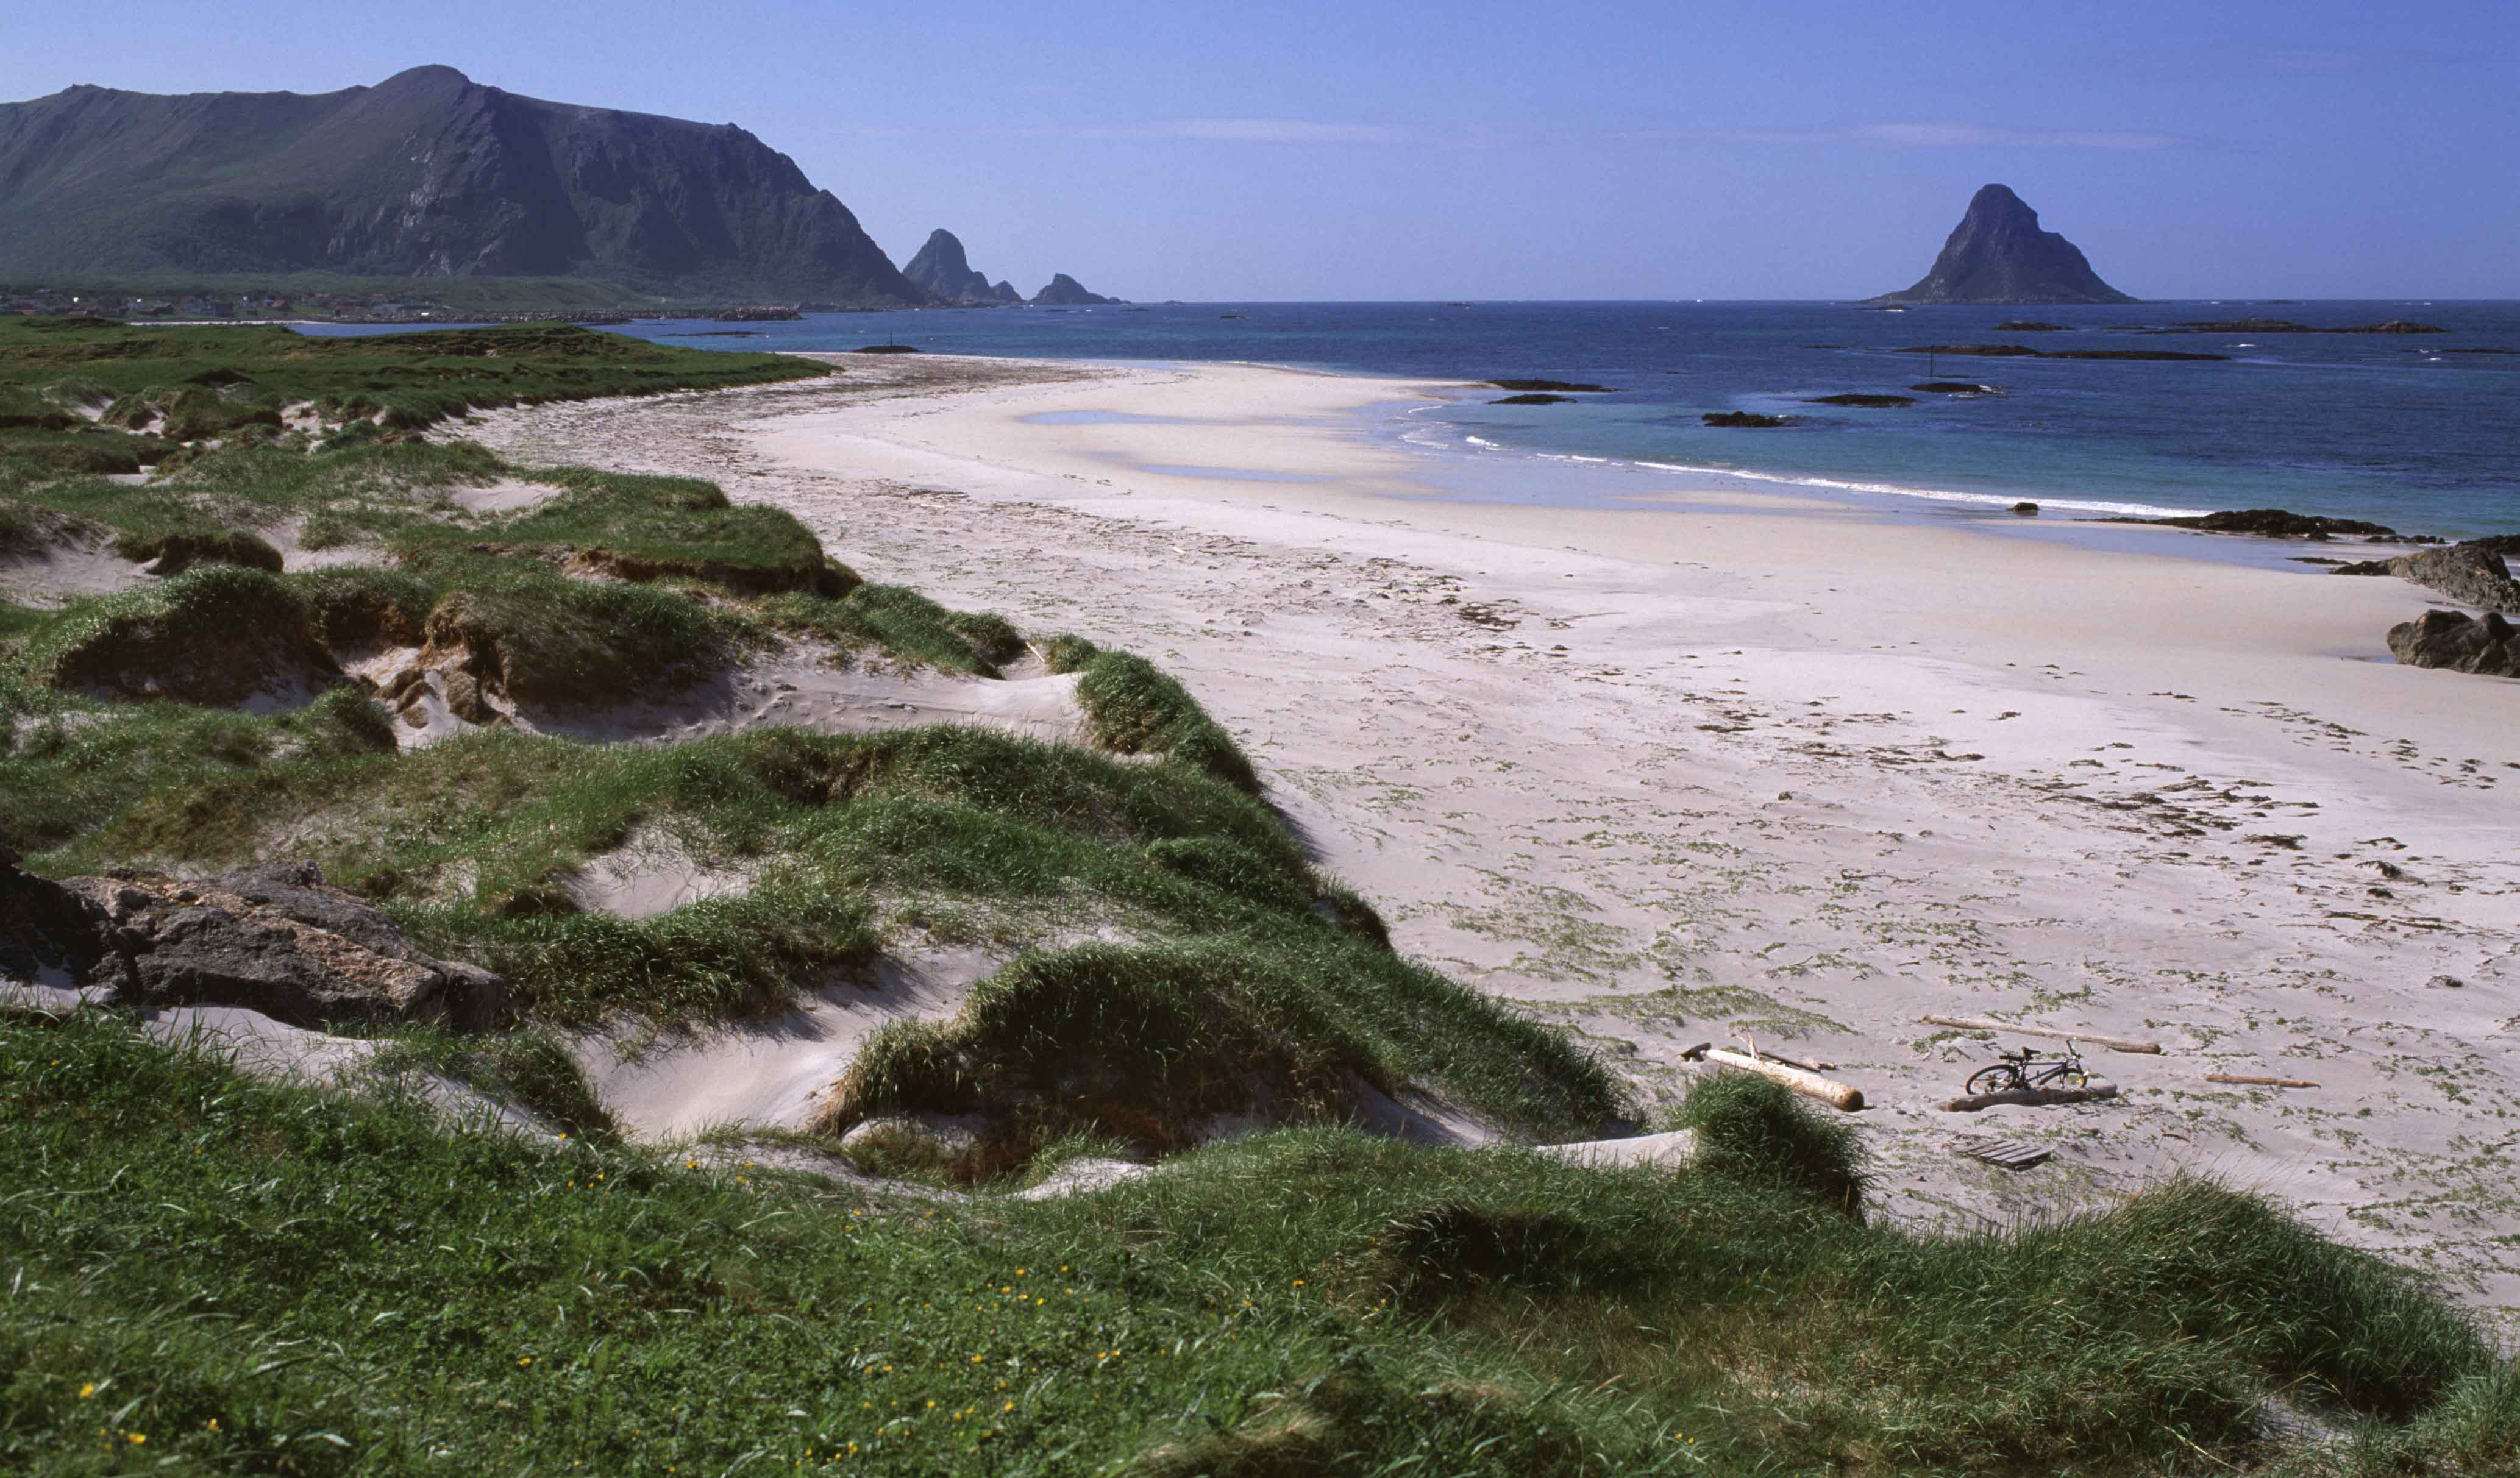 View of the white beach of Bleik at Andøya, Vesterålen.